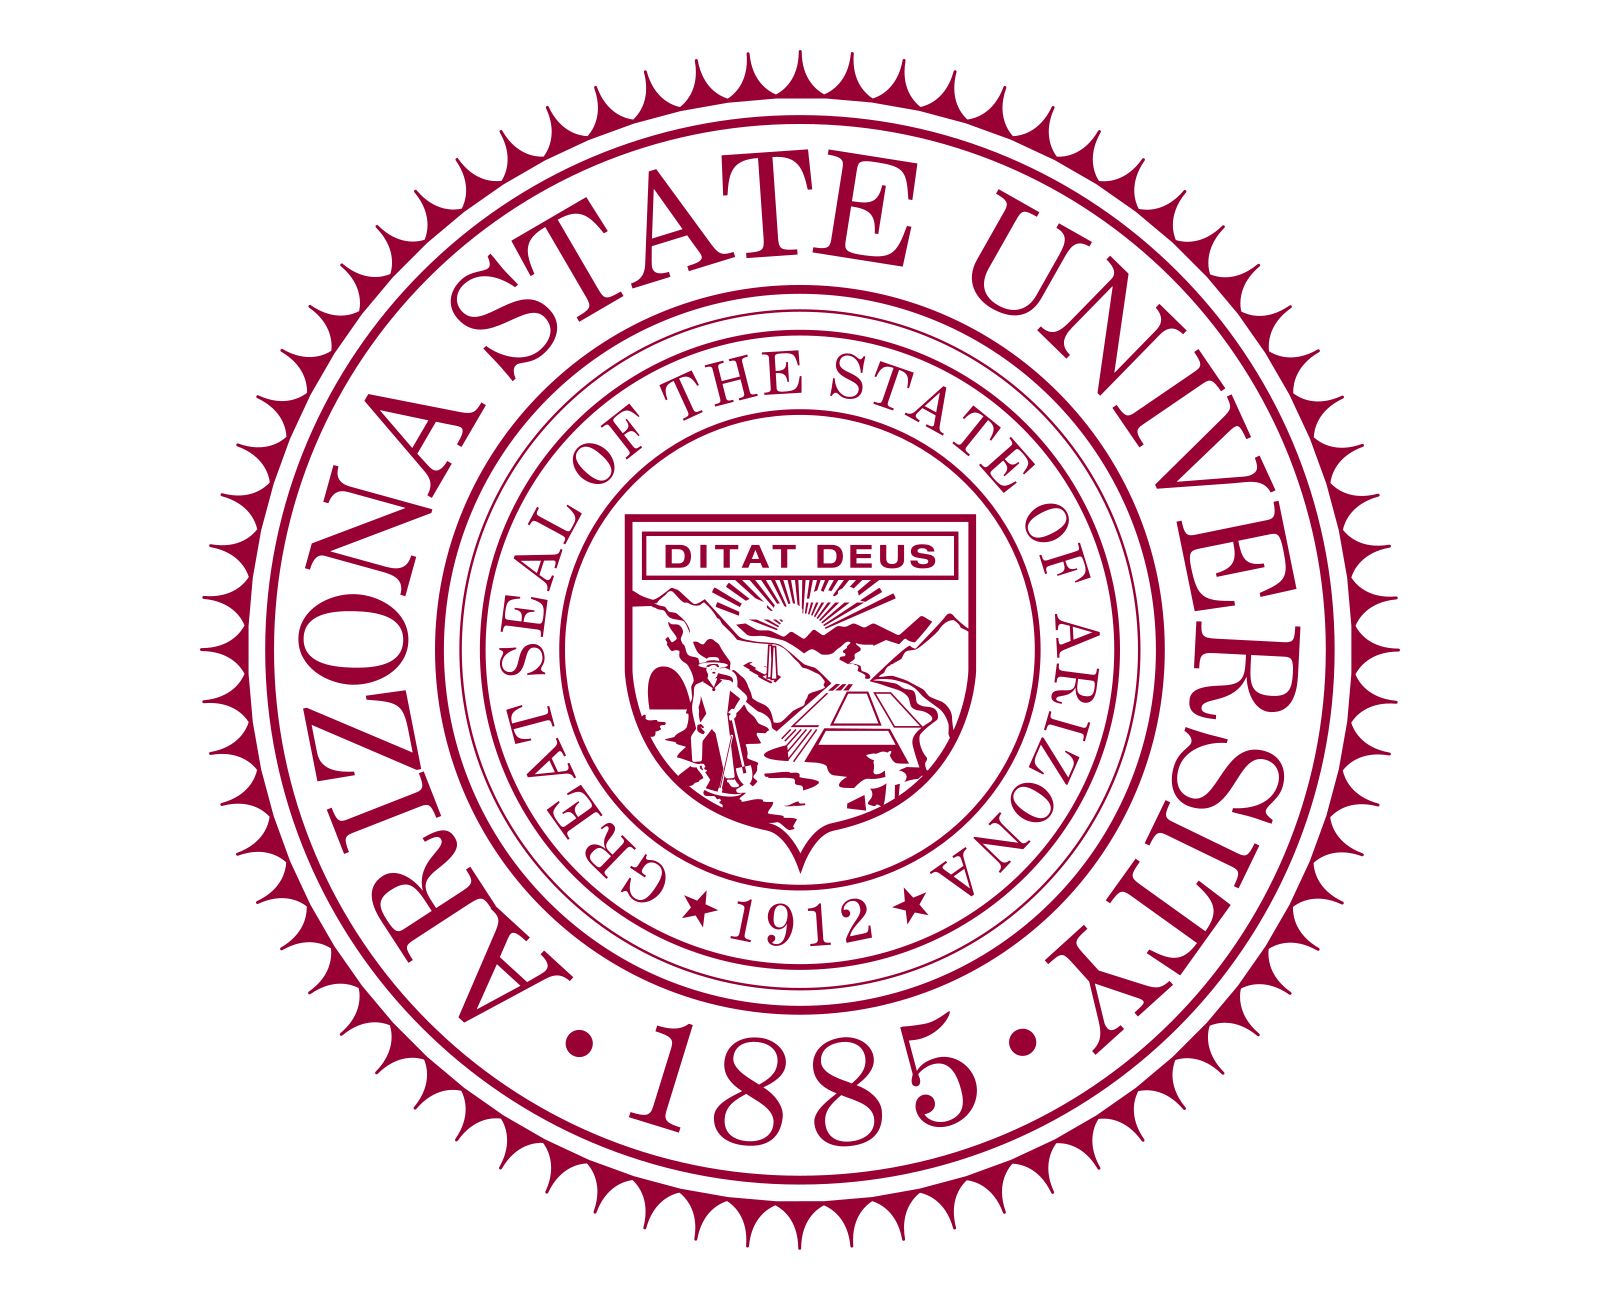 ASU Logo - ASU Logo, Arizona State University symbol, meaning